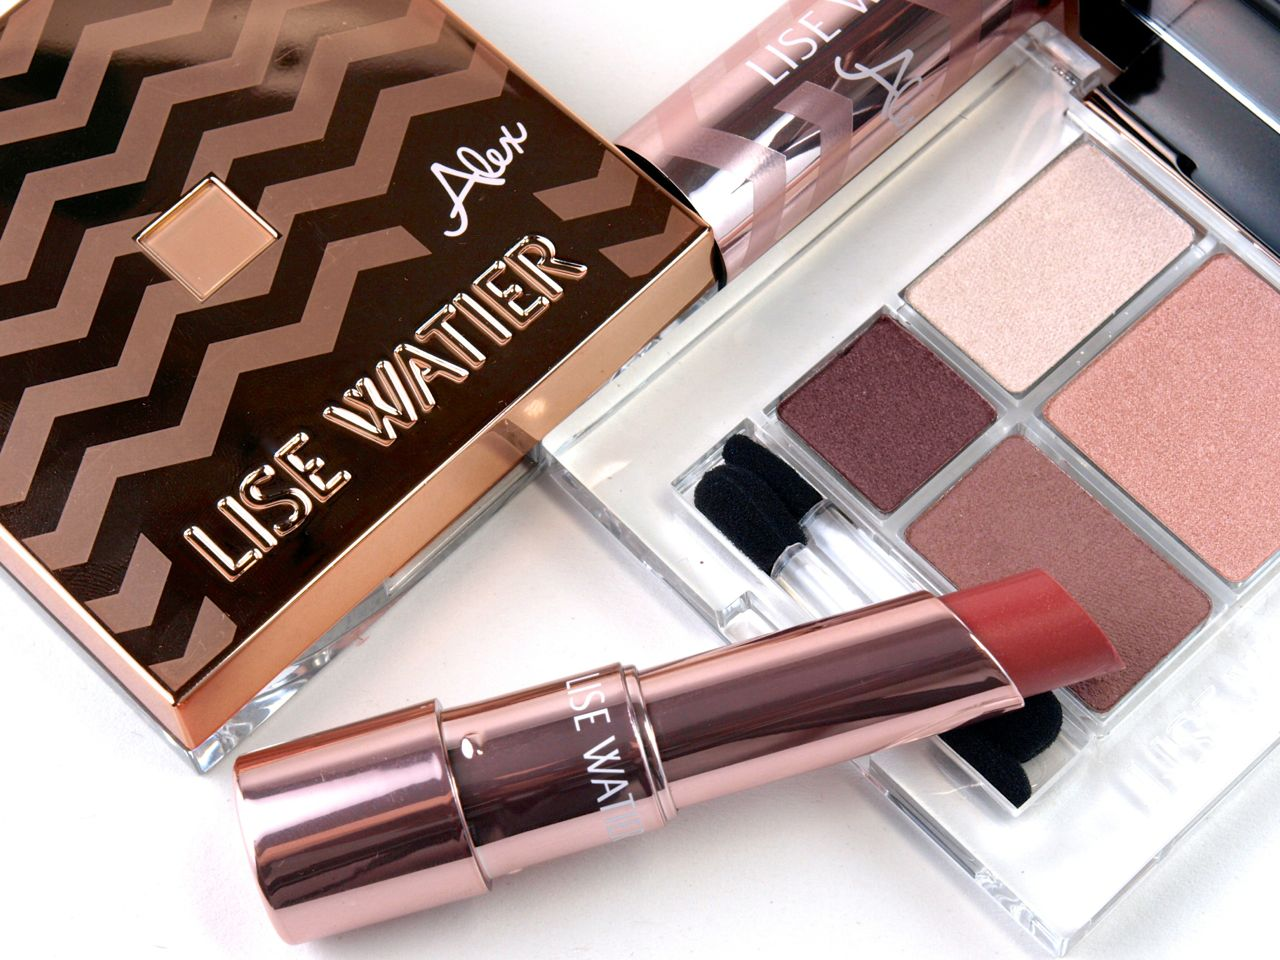 Lise Watier Alex Collection: Review and Swatches